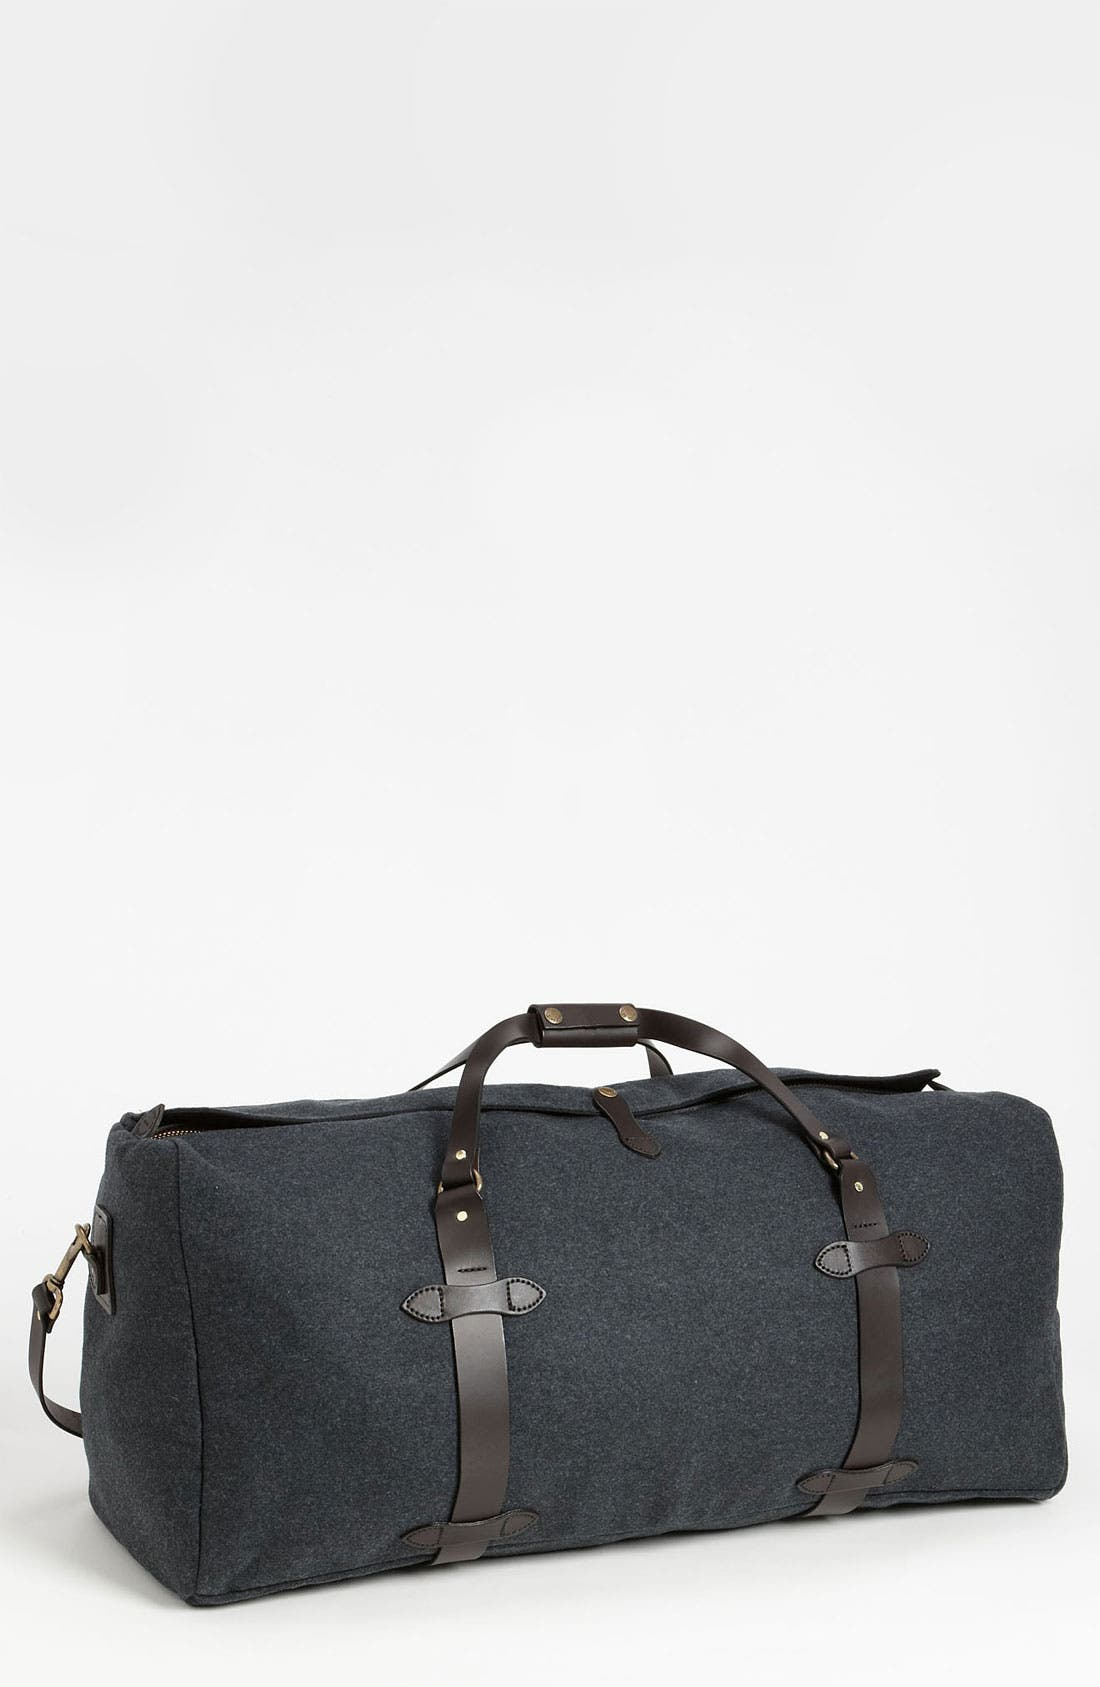 Main Image - Filson Large Wool Duffel Bag